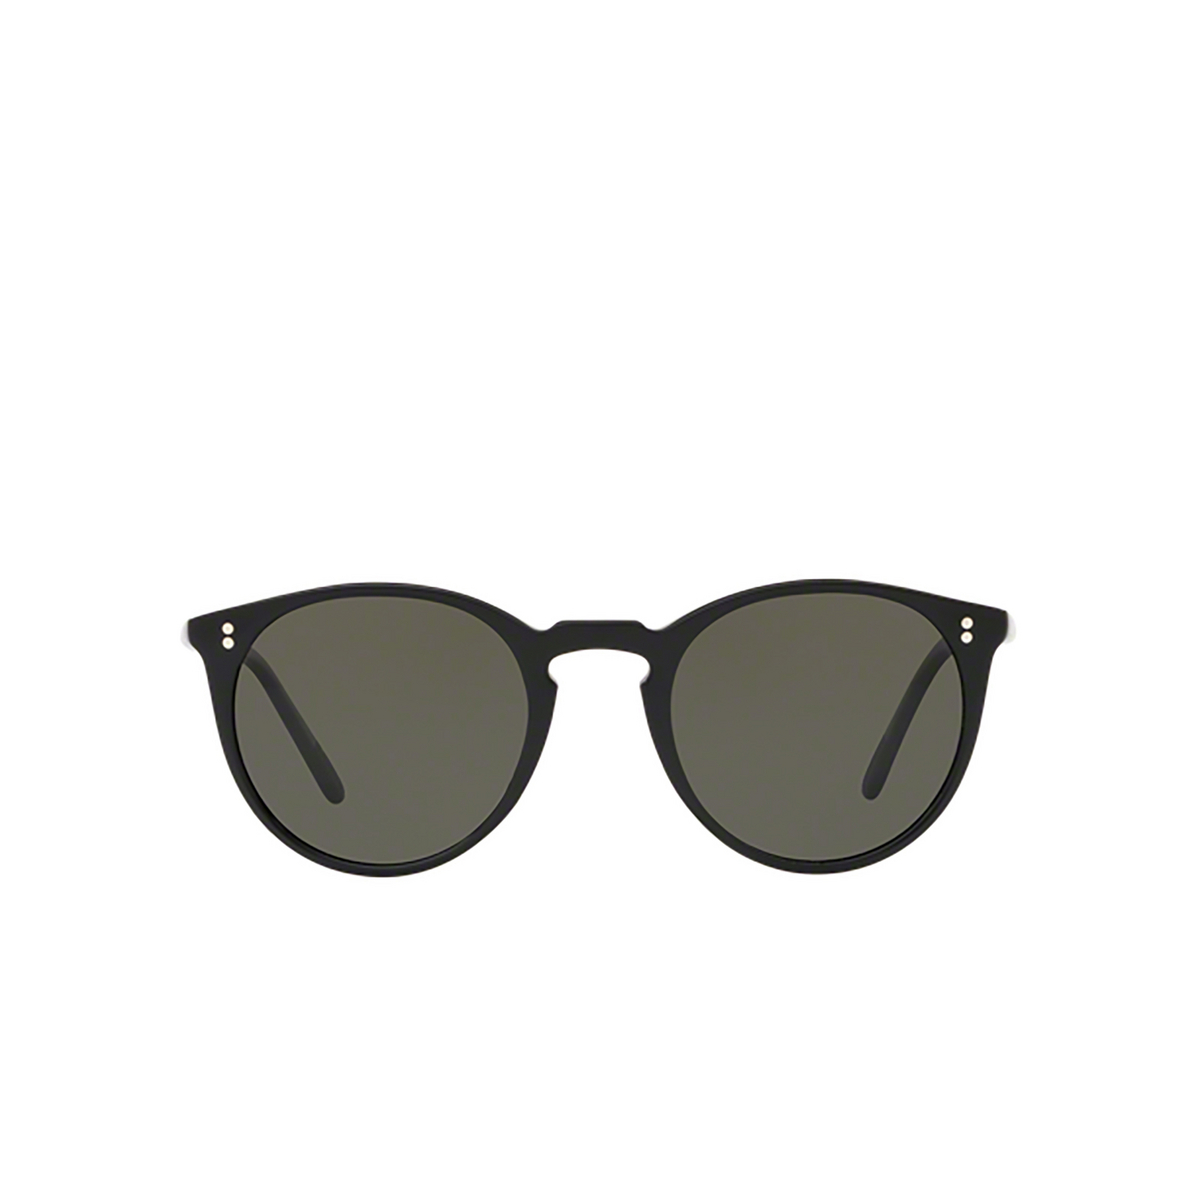 Oliver Peoples® Round Sunglasses: O'malley Sun OV5183S color Black 1005P1 - front view.